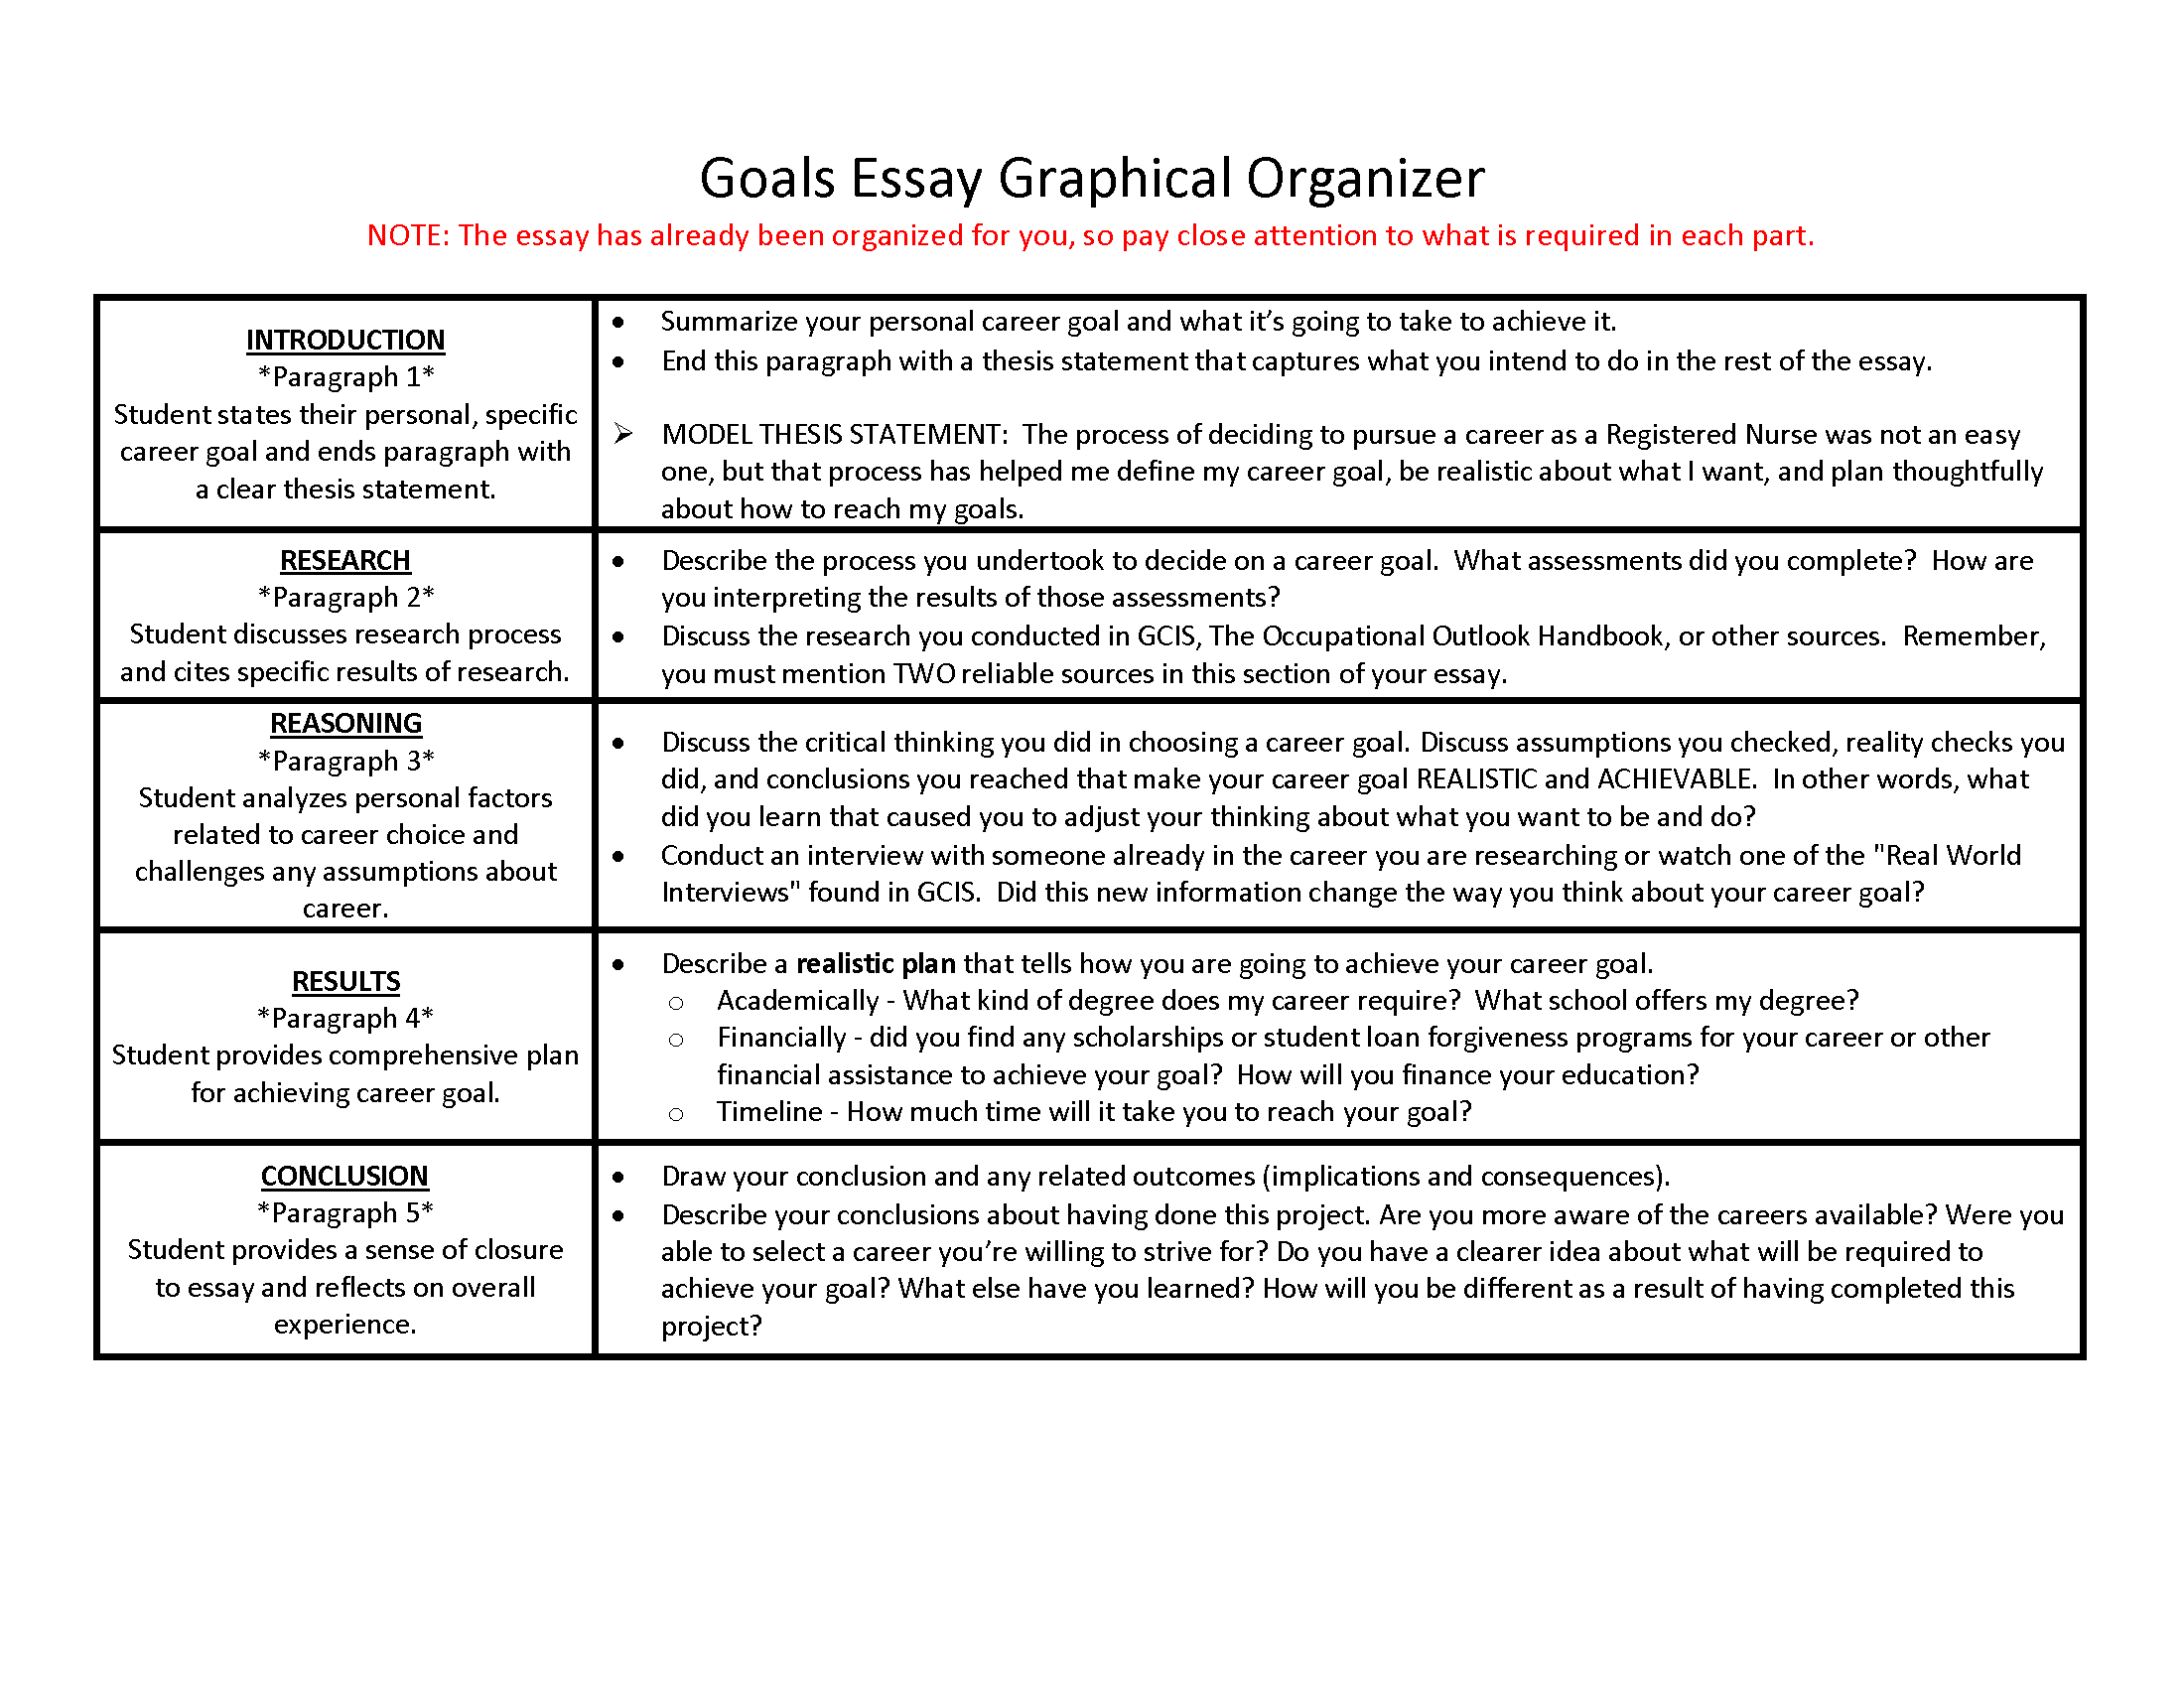 016 Essay About Goals Example Lochhaas Awesome In High School After Career Life Full